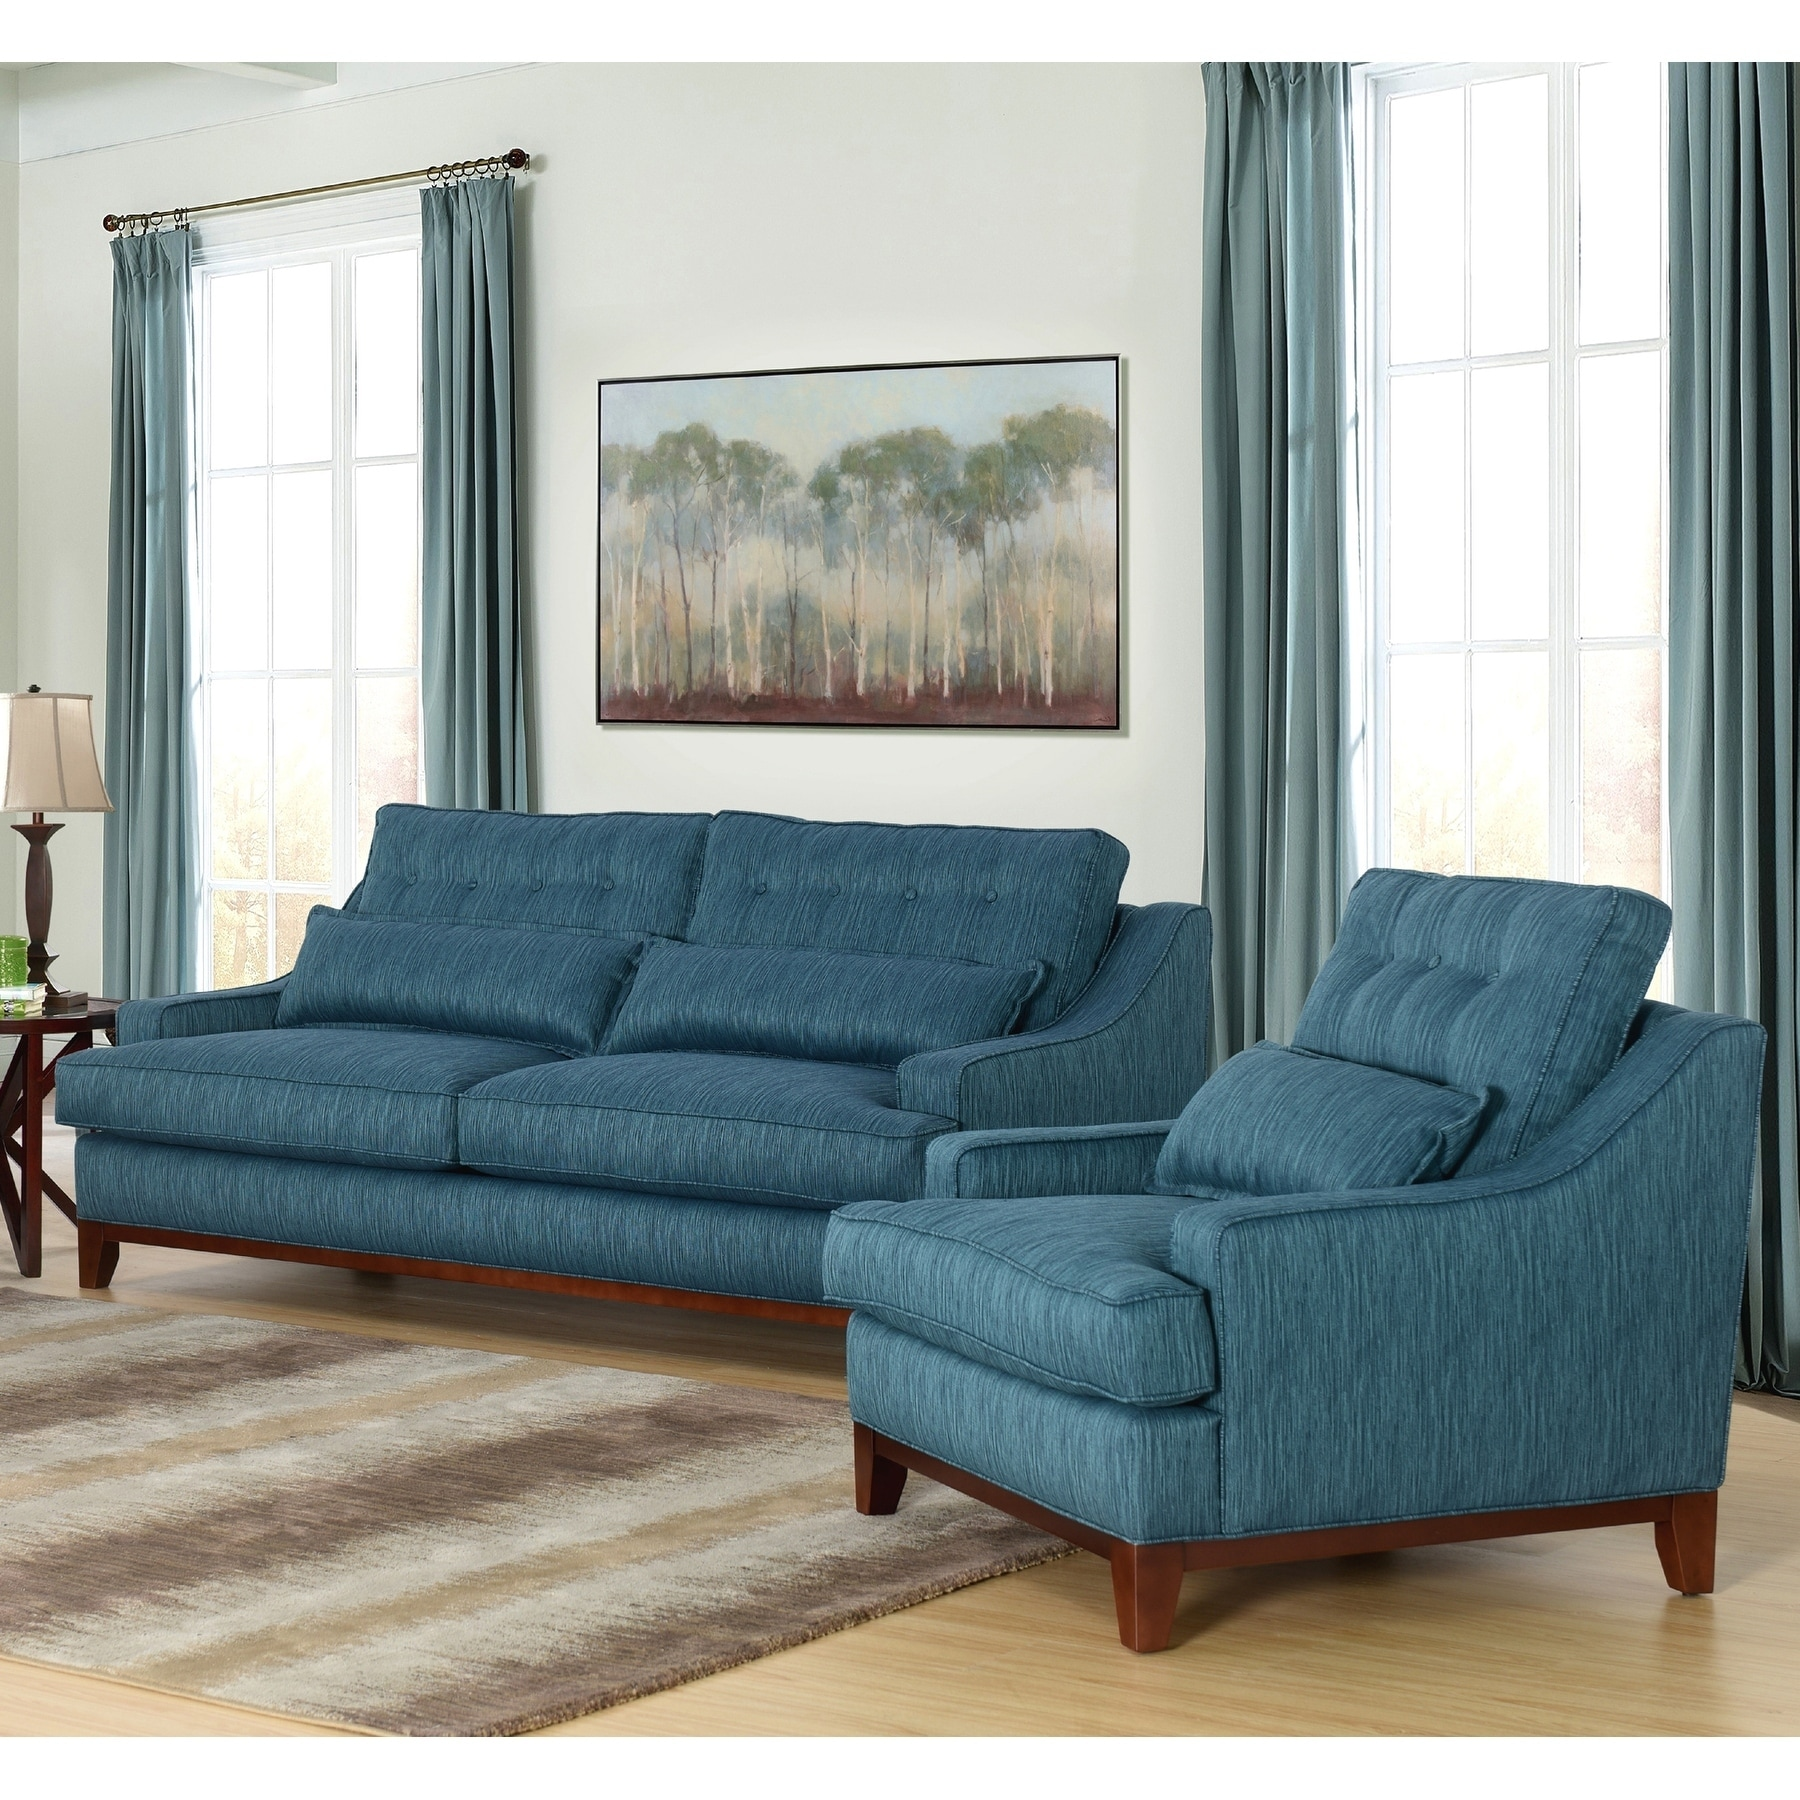 Swell Abbyson Winslow Blue Fabric 2 Piece Living Room Set Gmtry Best Dining Table And Chair Ideas Images Gmtryco